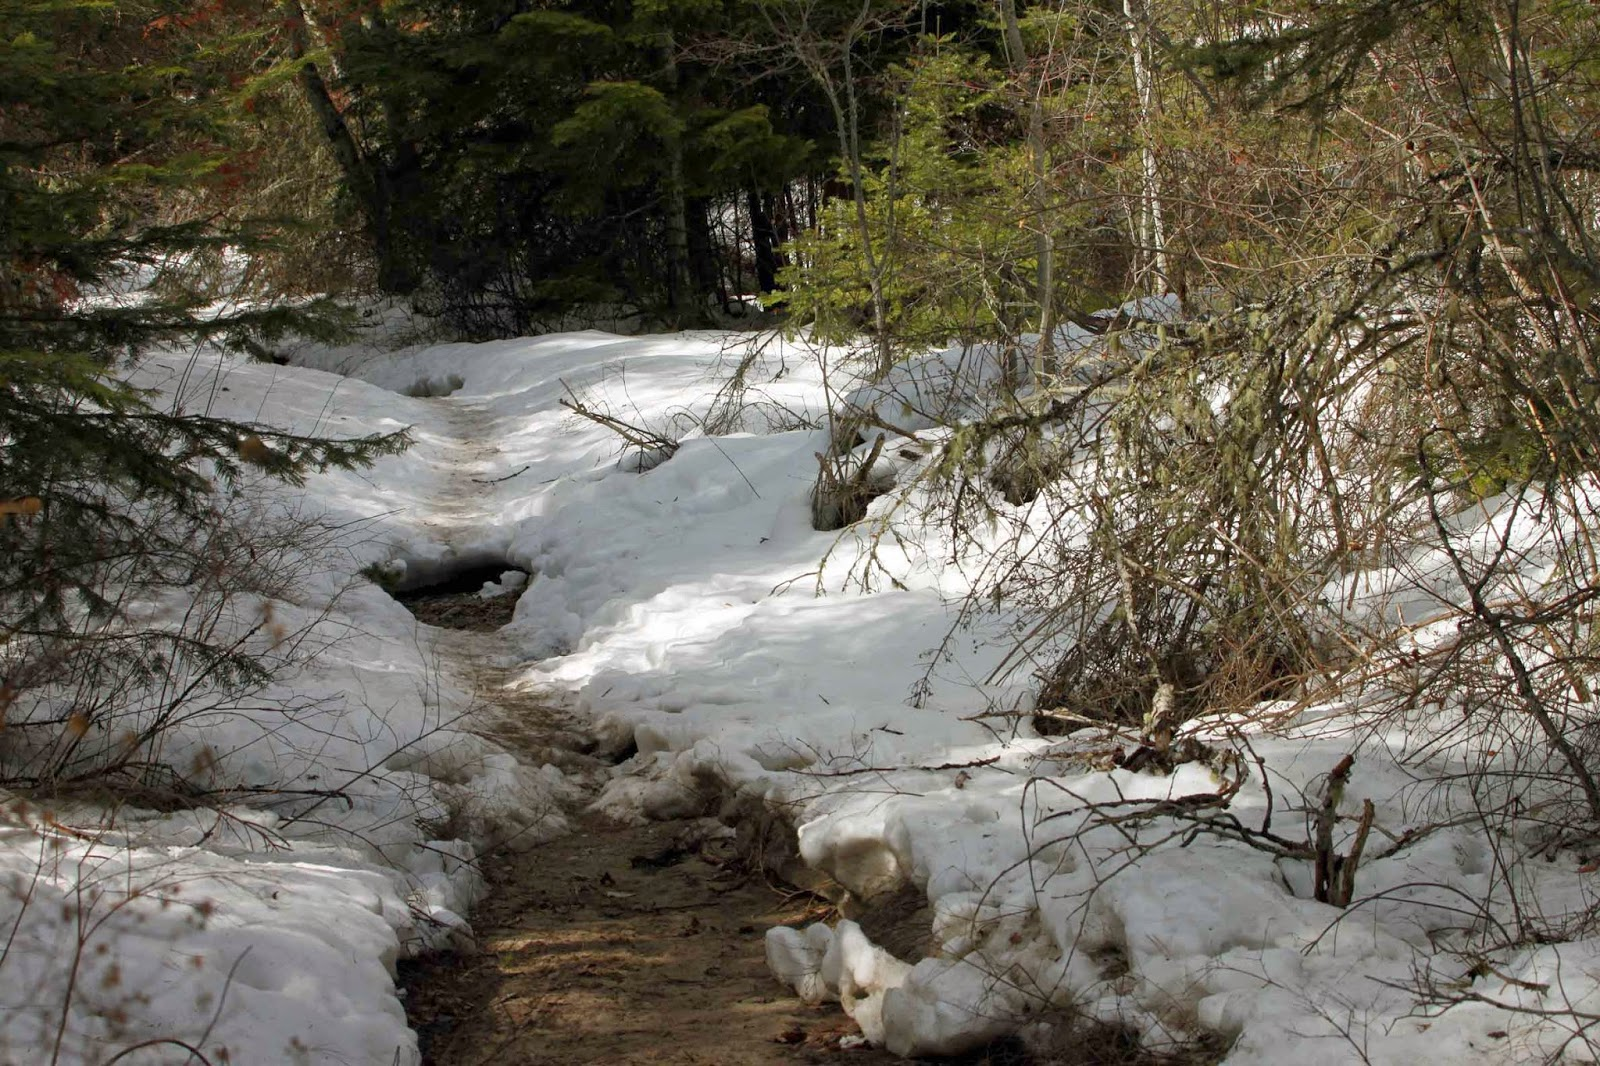 Bass Creek NRA trail in March, snow blanketing ground